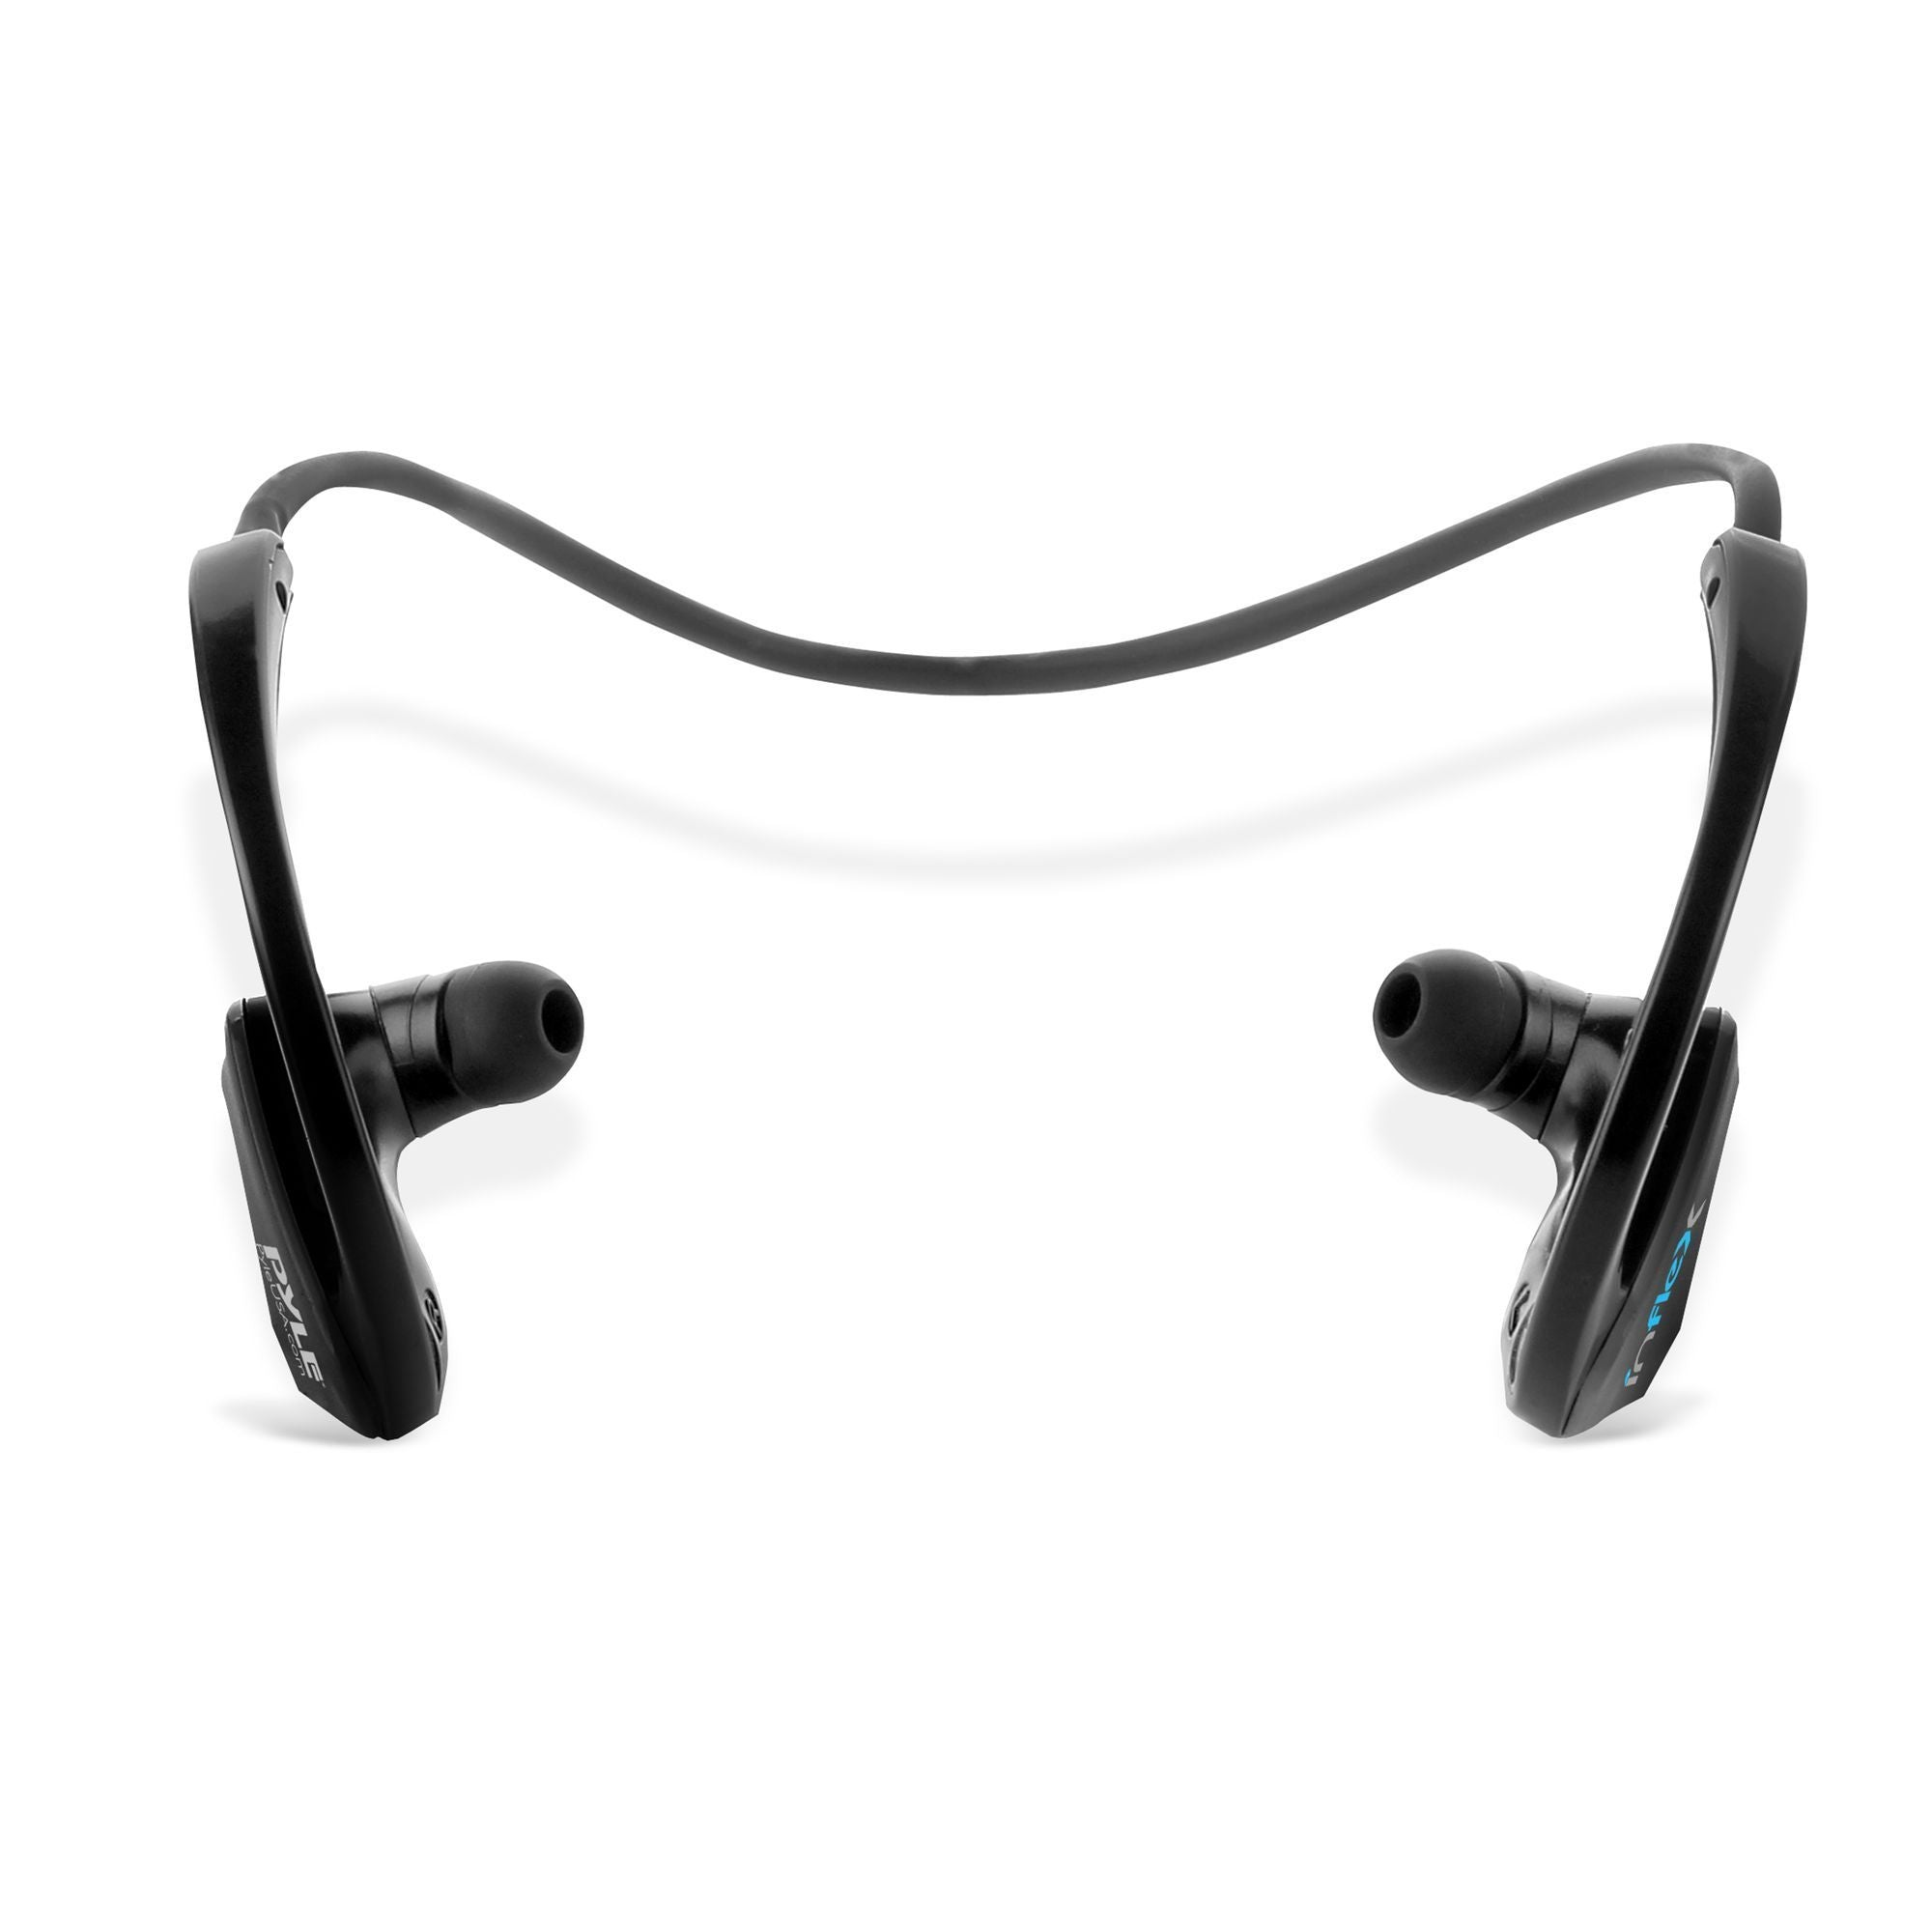 Pyle MP3 Player Bluetooth Headphones - Waterproof Fitness MP3 Headphones for Swimming, Sports, Running, MP3 Wireless, 2-in-1 8Gb Memory, Store Up to 2,500 Songs - PSWP9BTBK